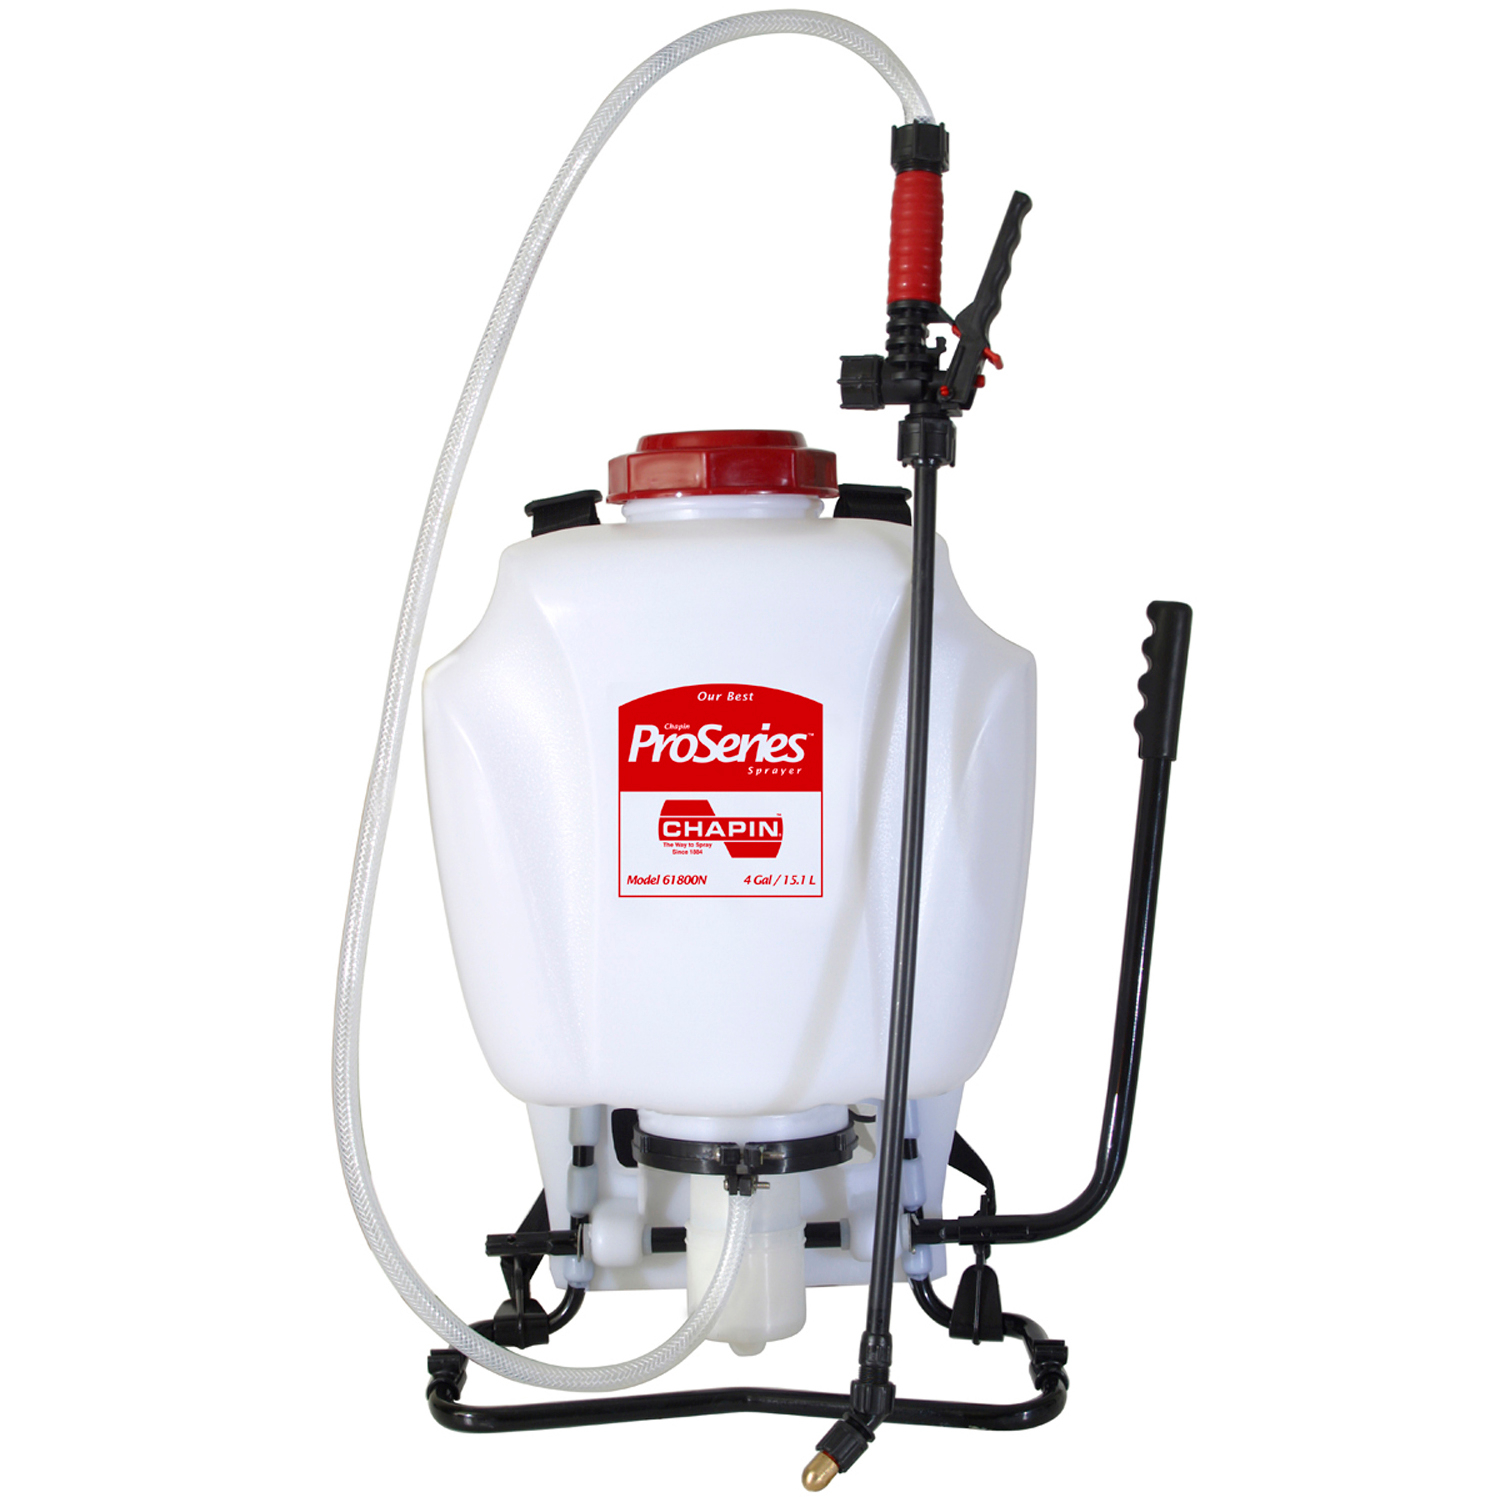 Chapin 61800 4 Gallon Backpack Sprayer